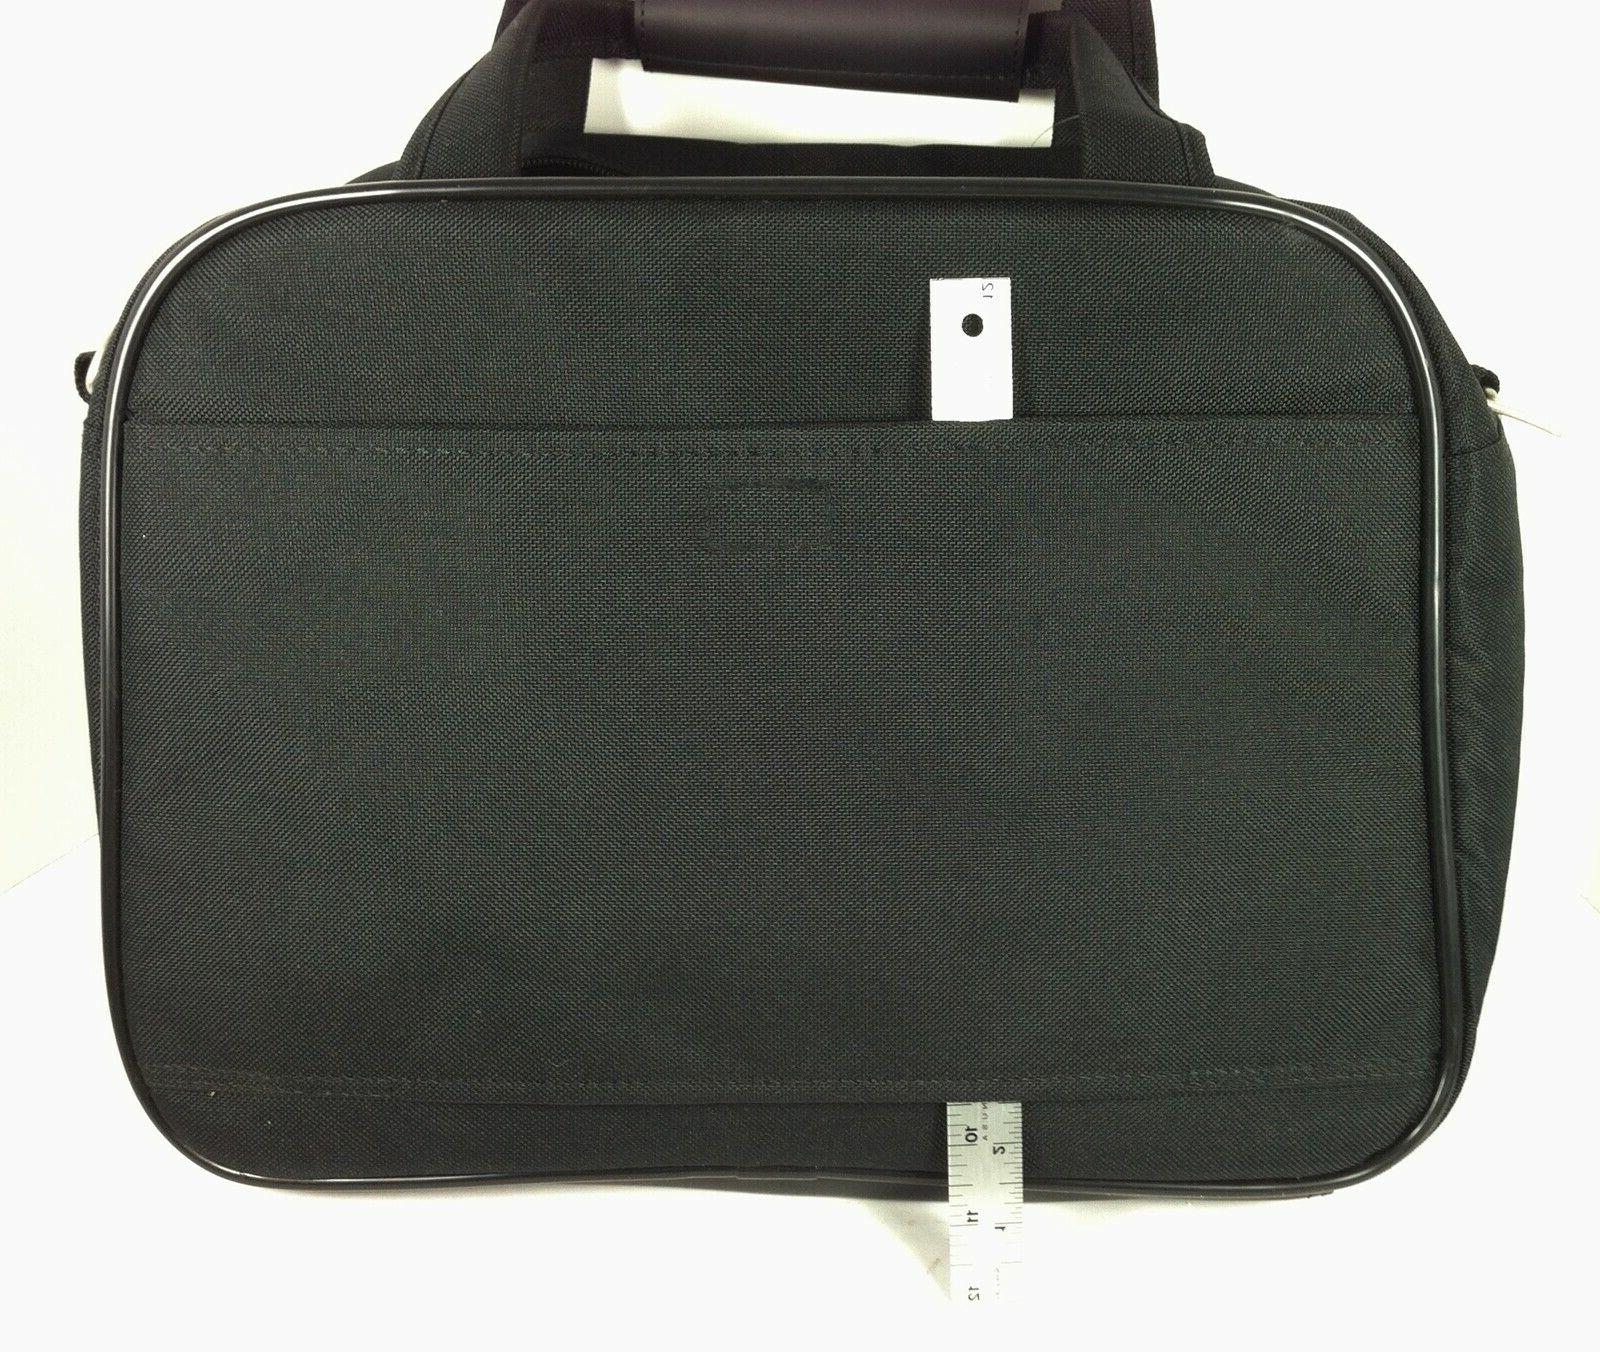 Samsonite Shoulder NWT Boarding On Overnight Travel Luggage